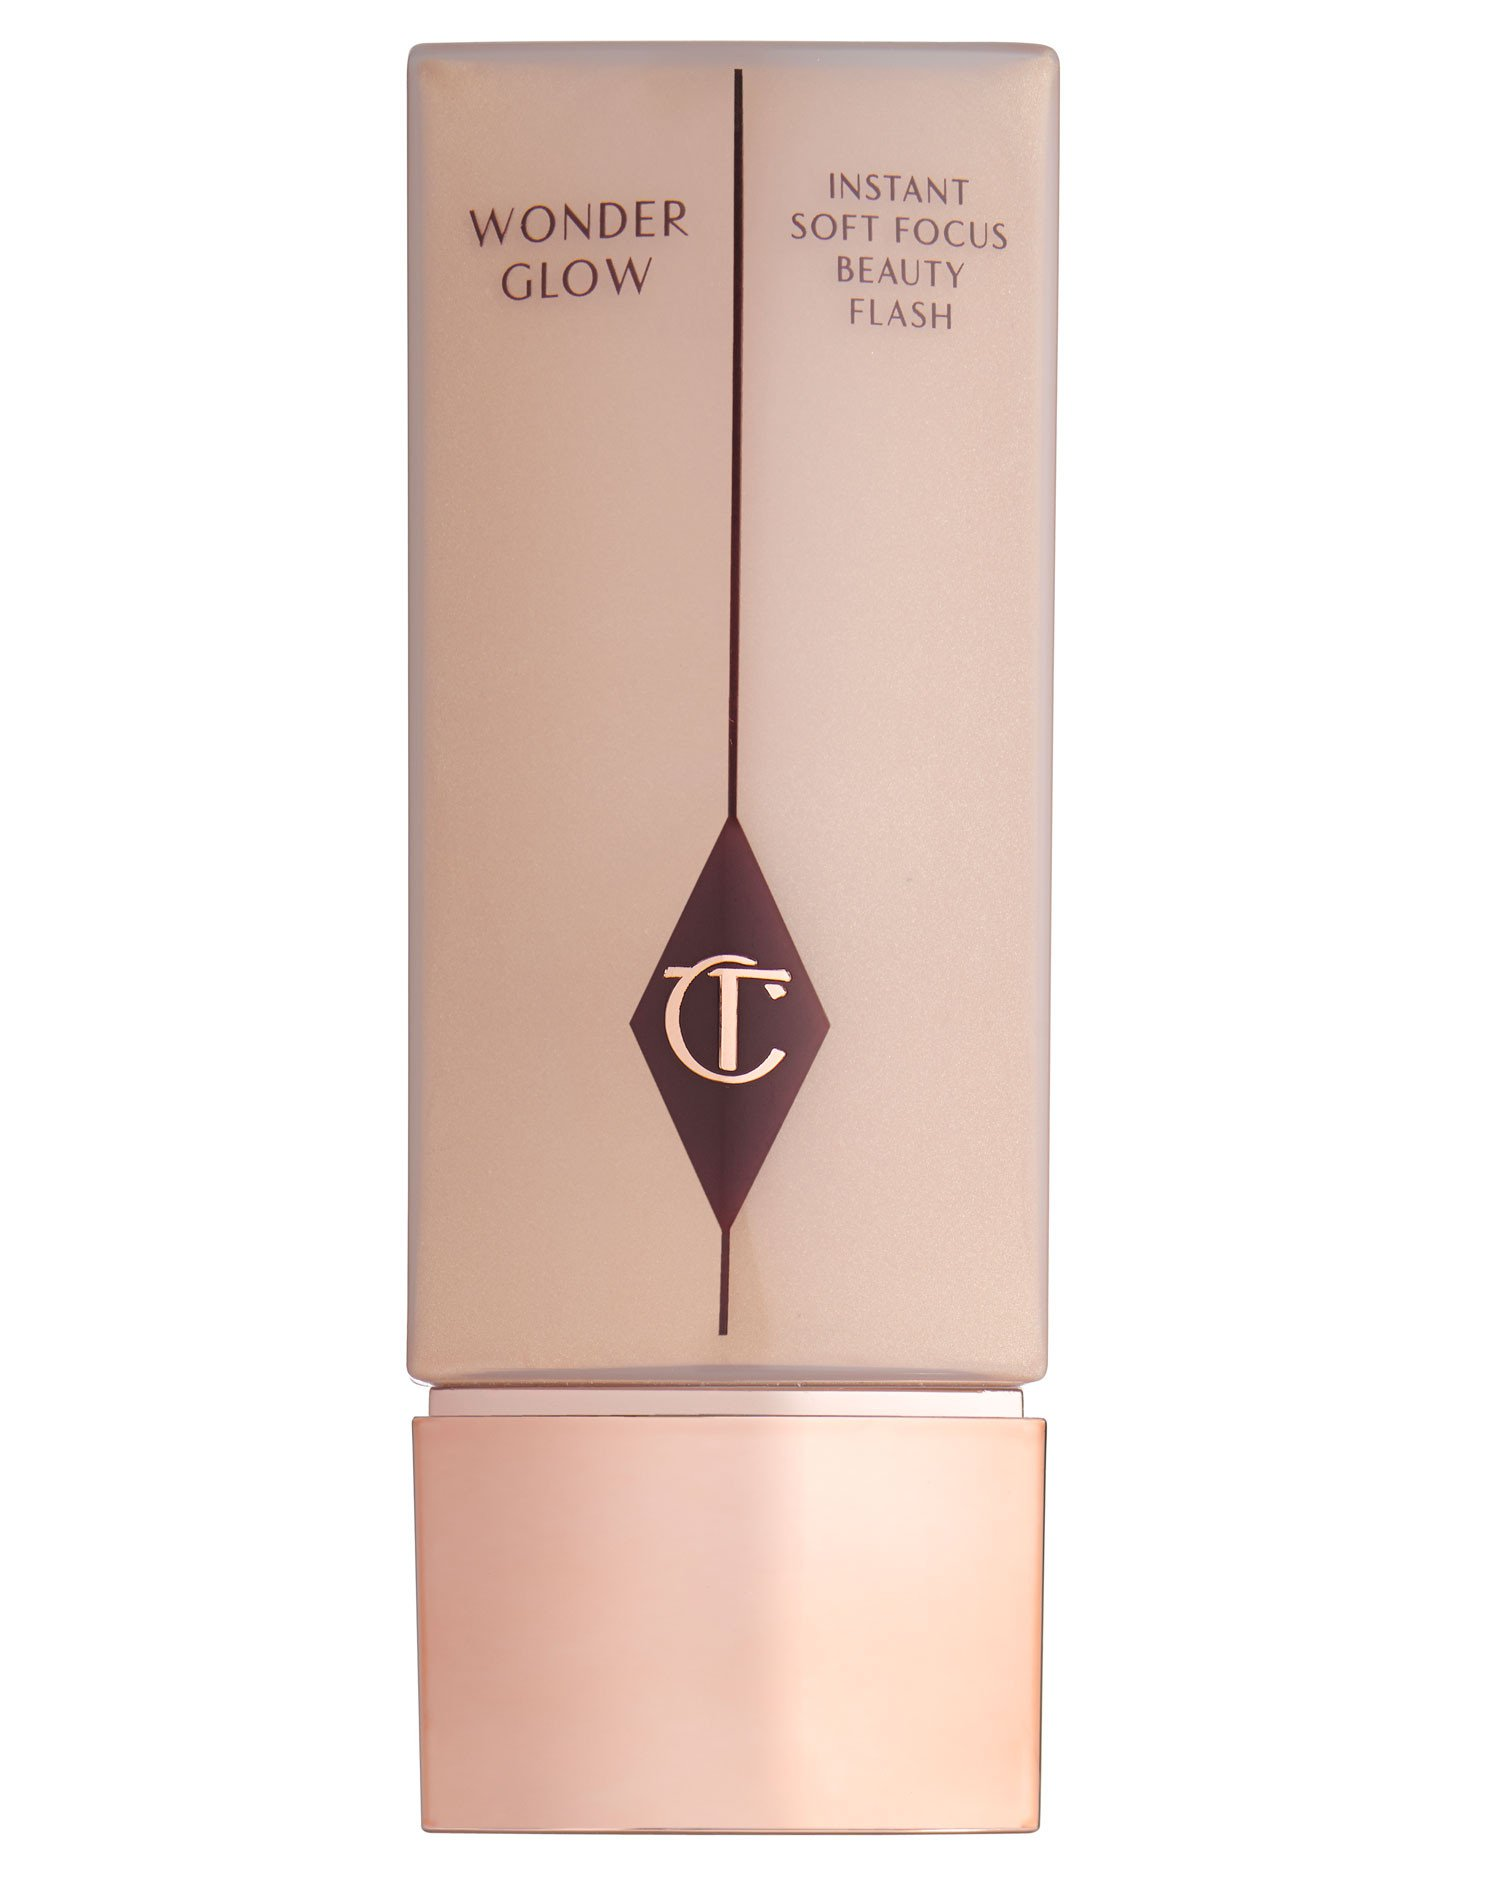 WONDERGLOW FACE PRIMER